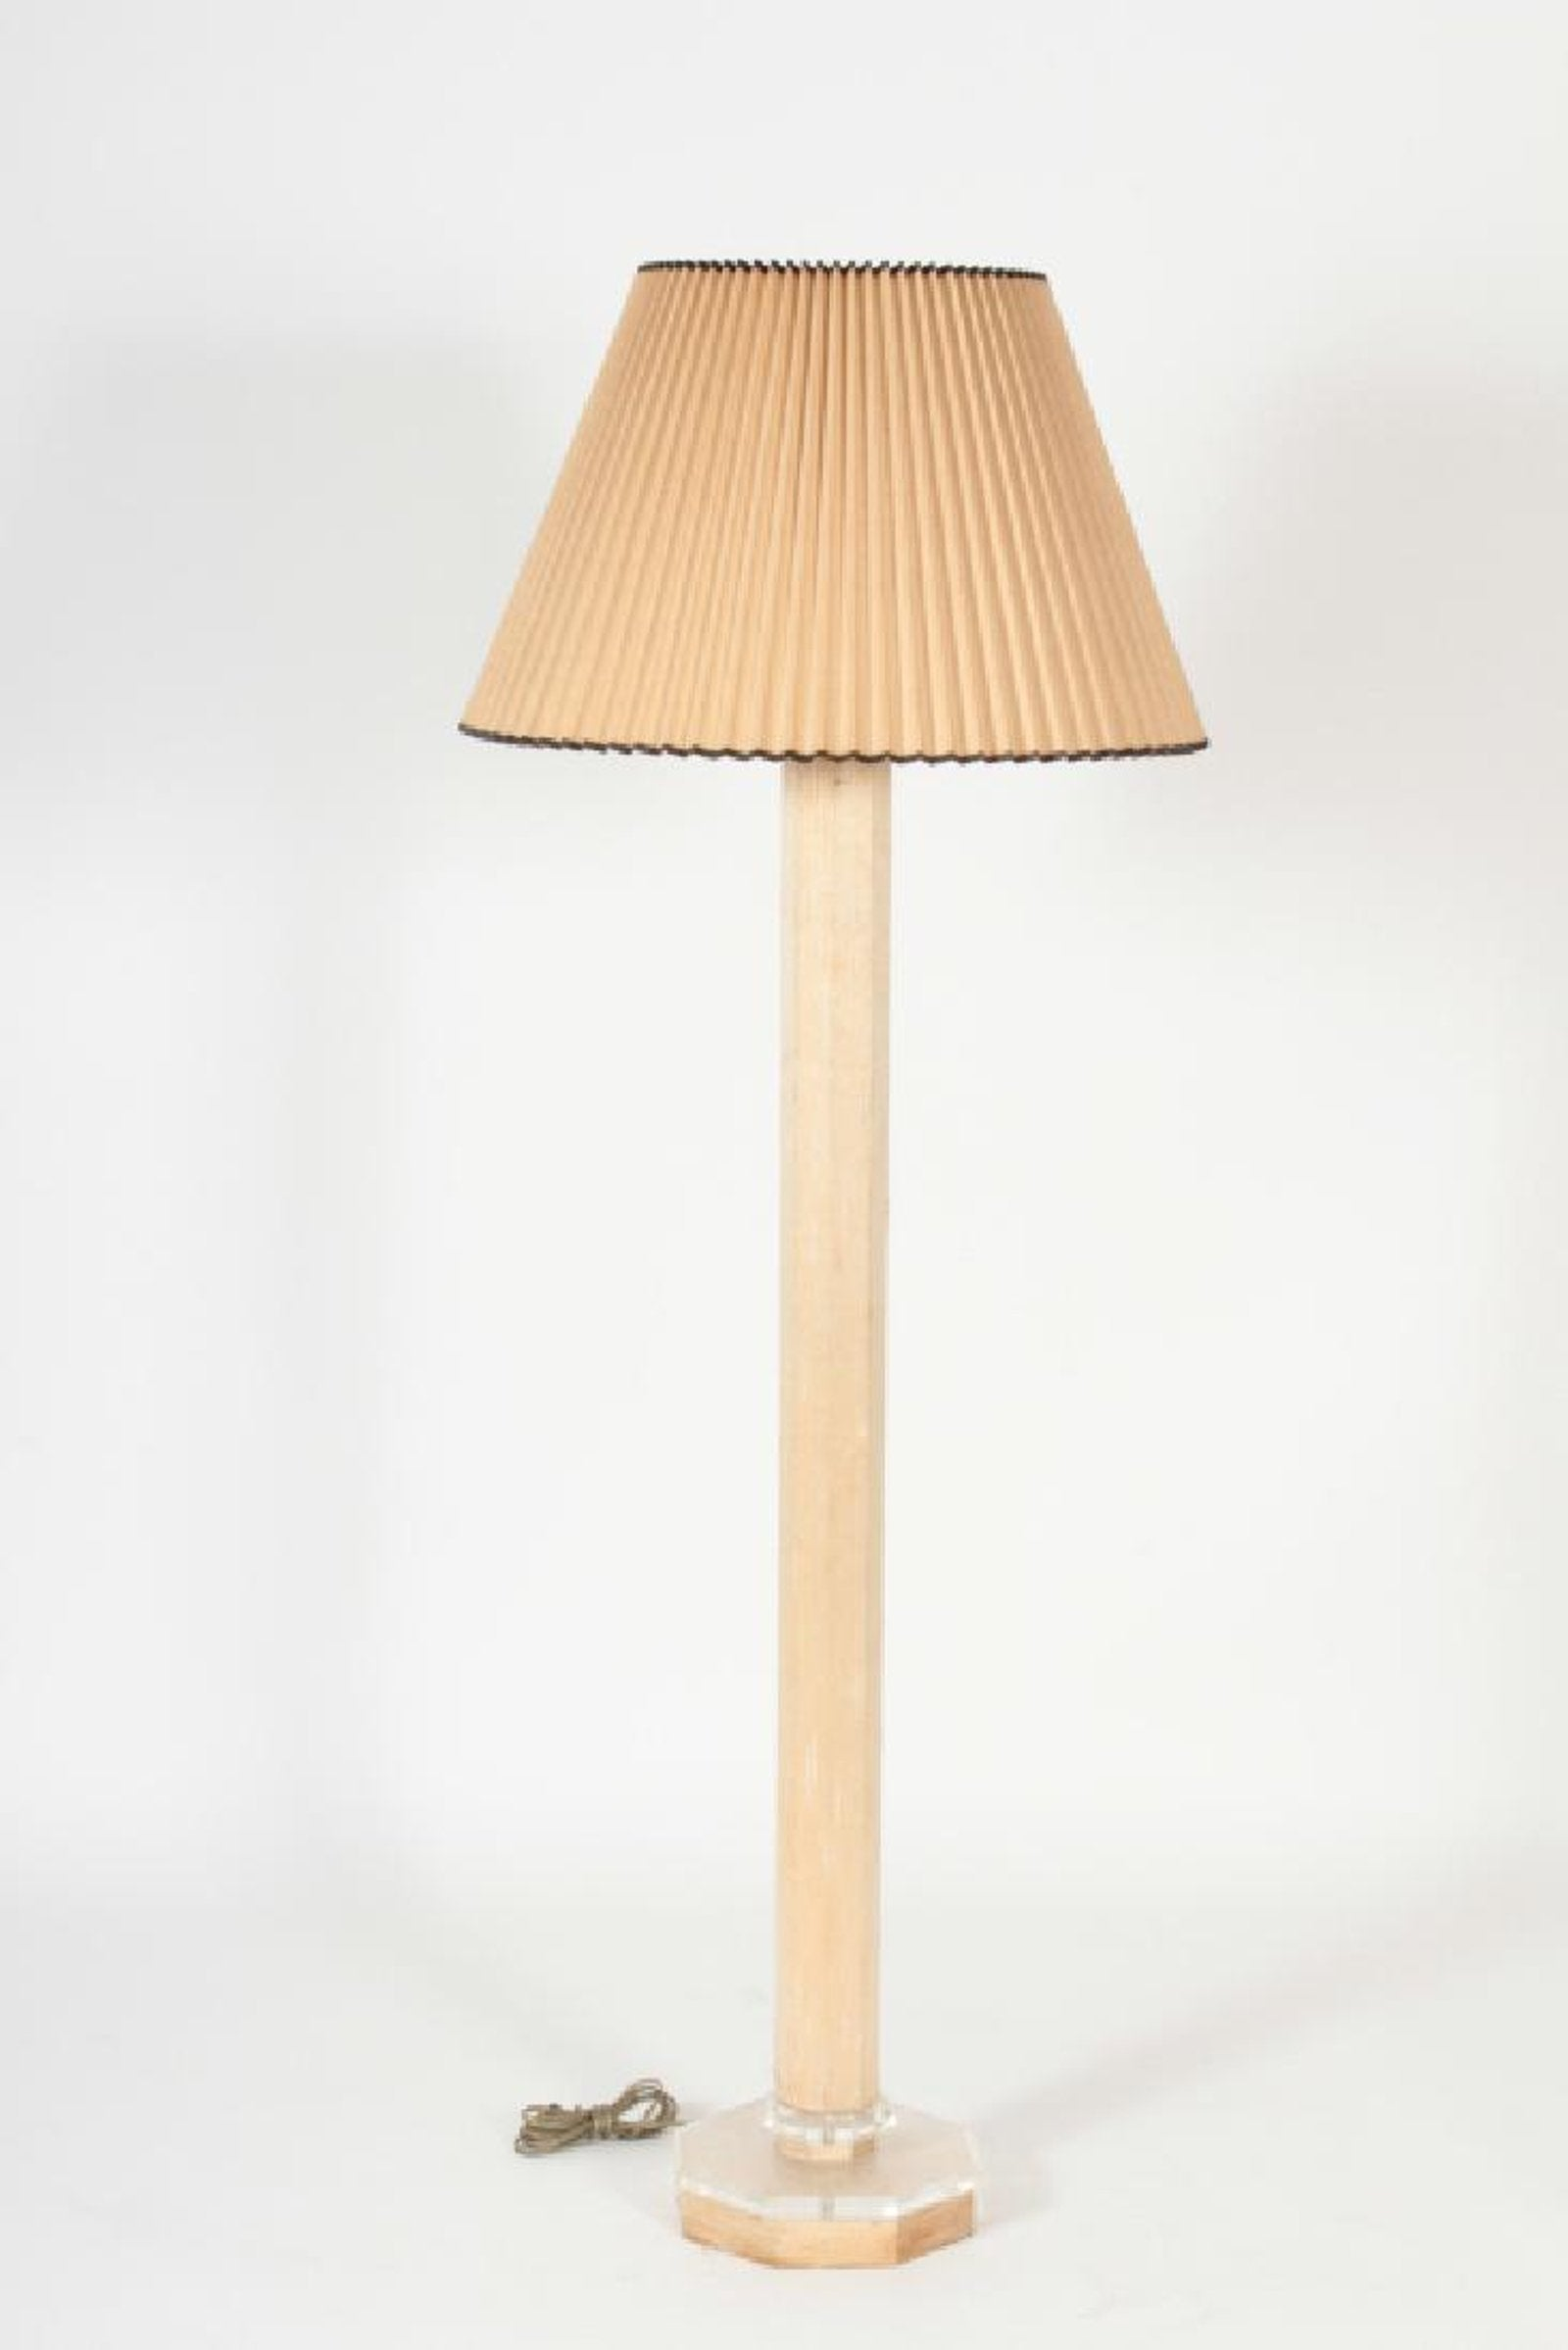 Standing Floor Lamp Possibly Karl Springer